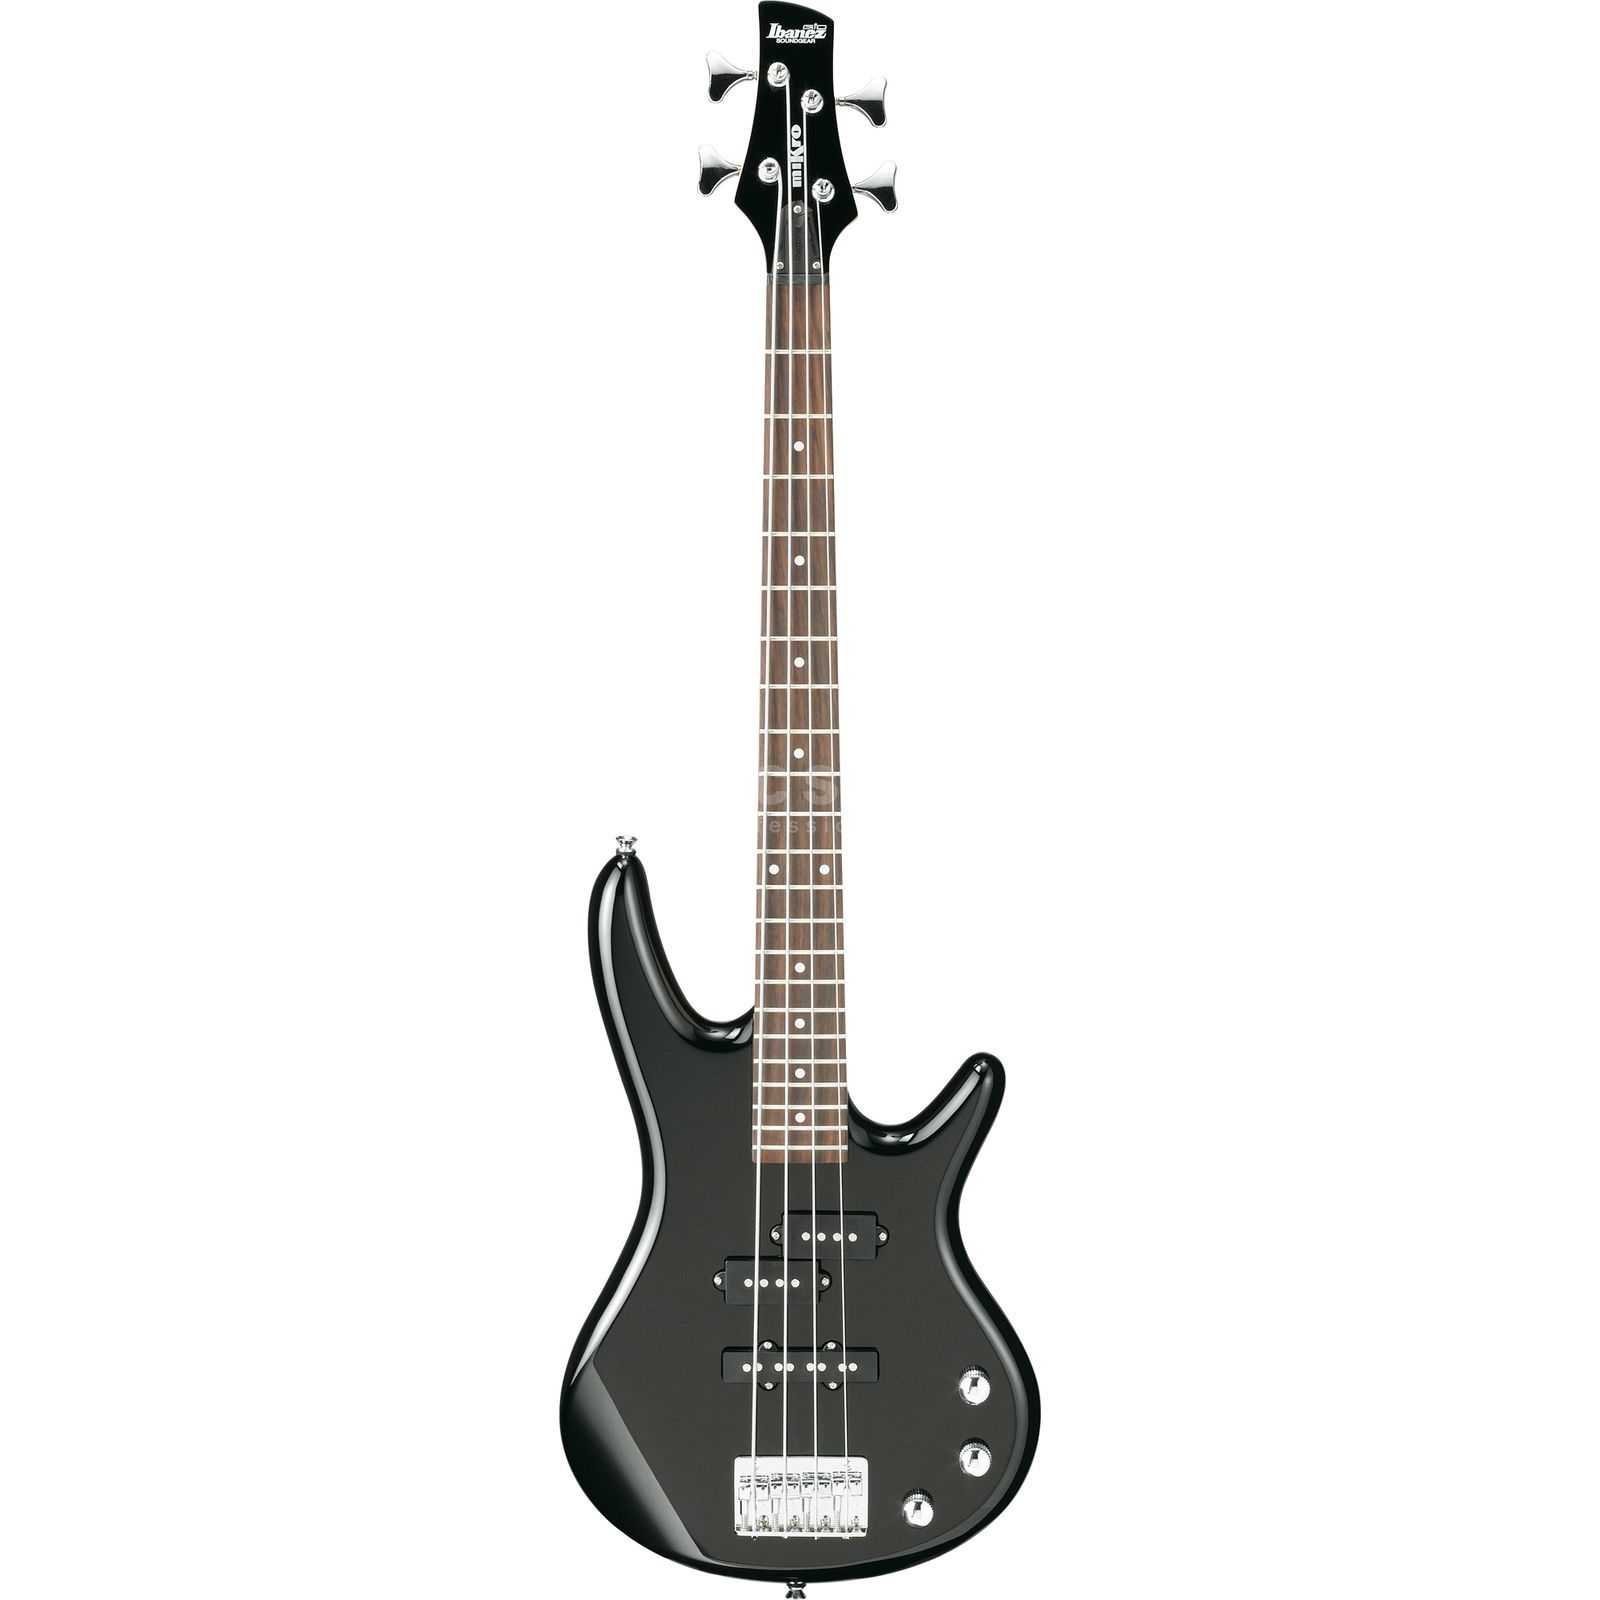 Ibanez GSRM20 Mini Bass Guitar, Black    Product Image